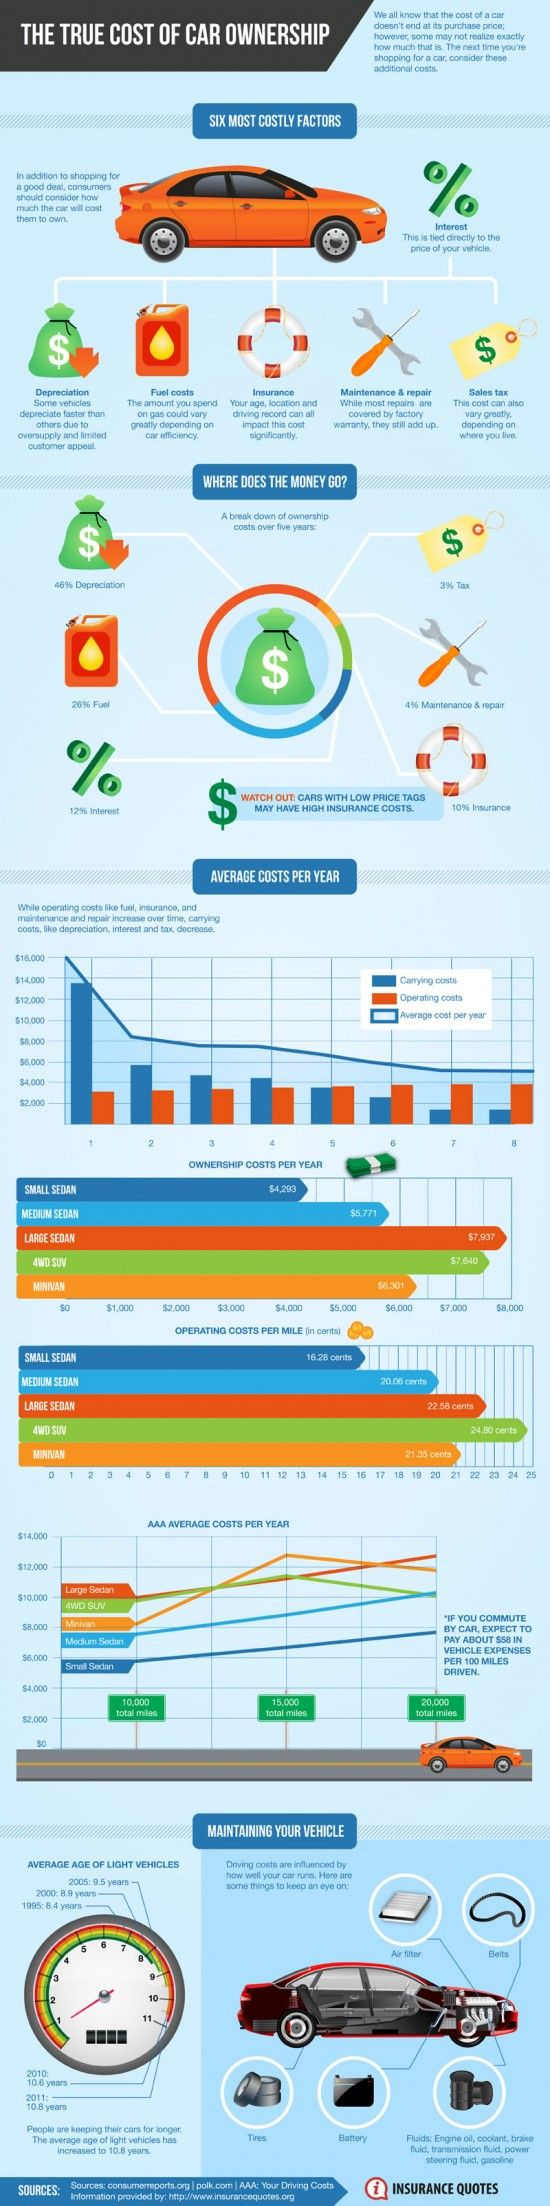 7 best topic money management images on pinterest frugal money infographic the true cost of car ownership fandeluxe Image collections